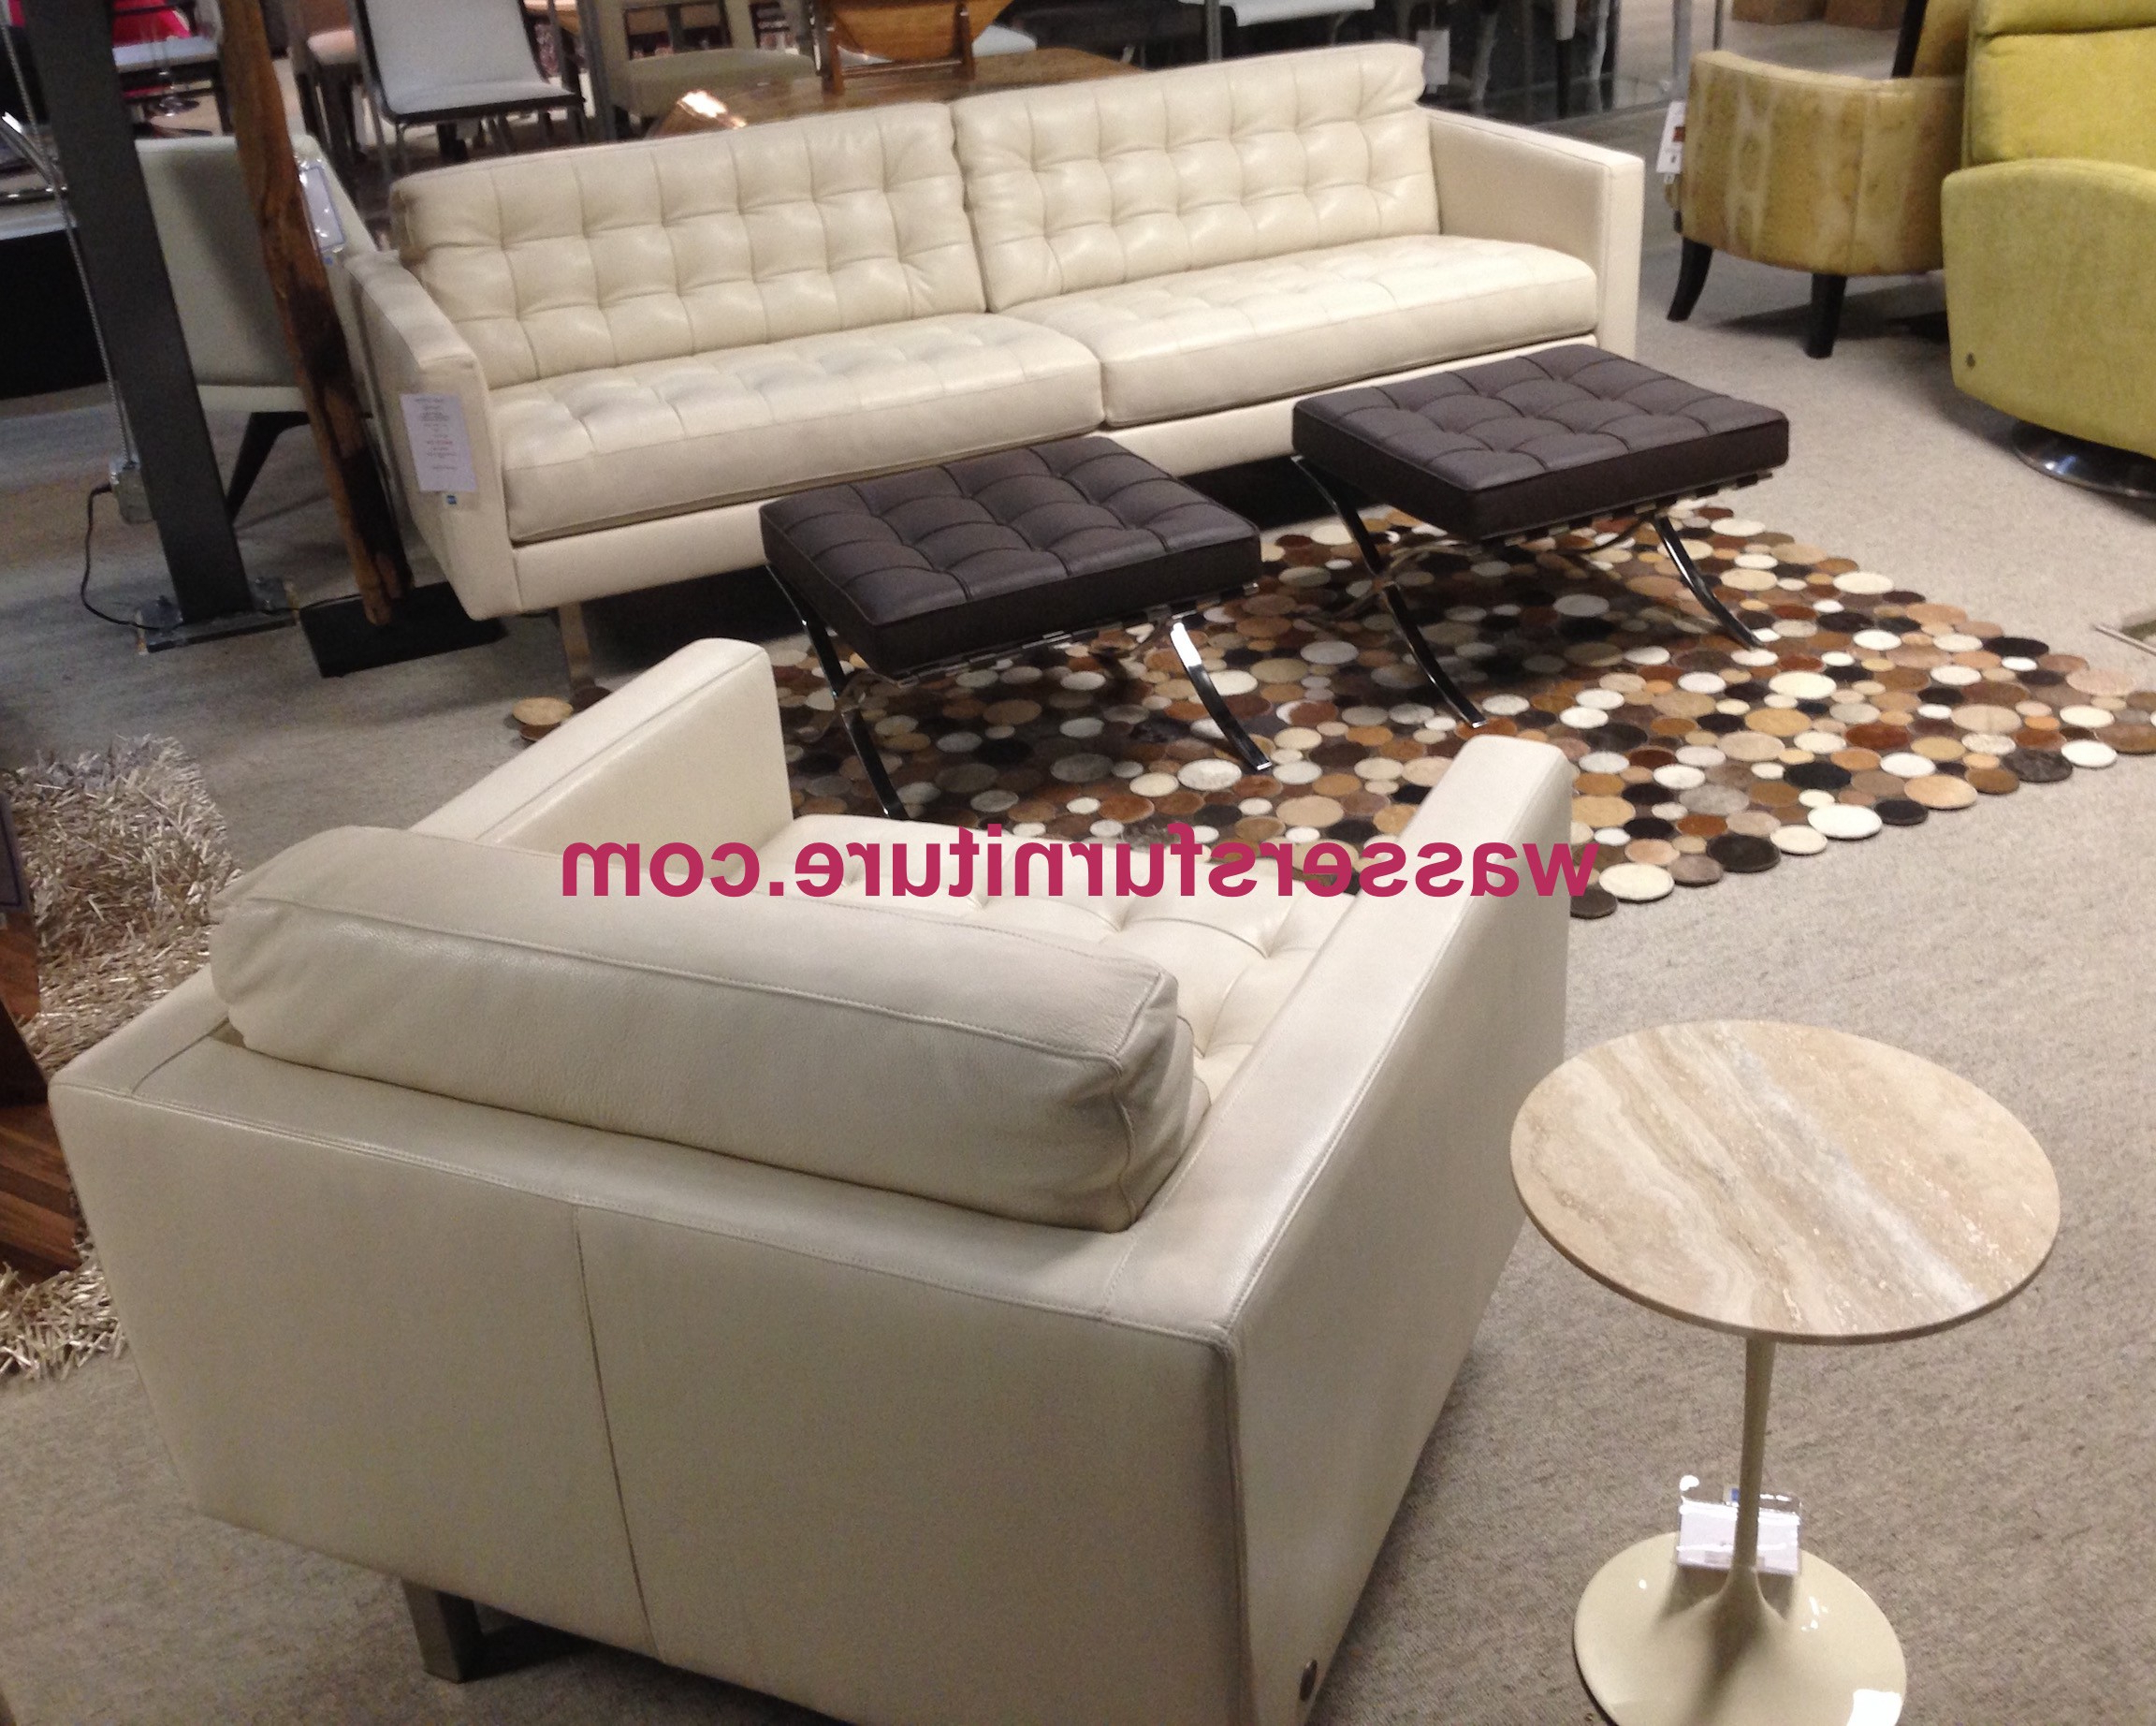 American Leather – Parker – Sofa – Bison White – Leather – In Stock! Intended For Well Liked Parker Sofa Chairs (Gallery 19 of 20)